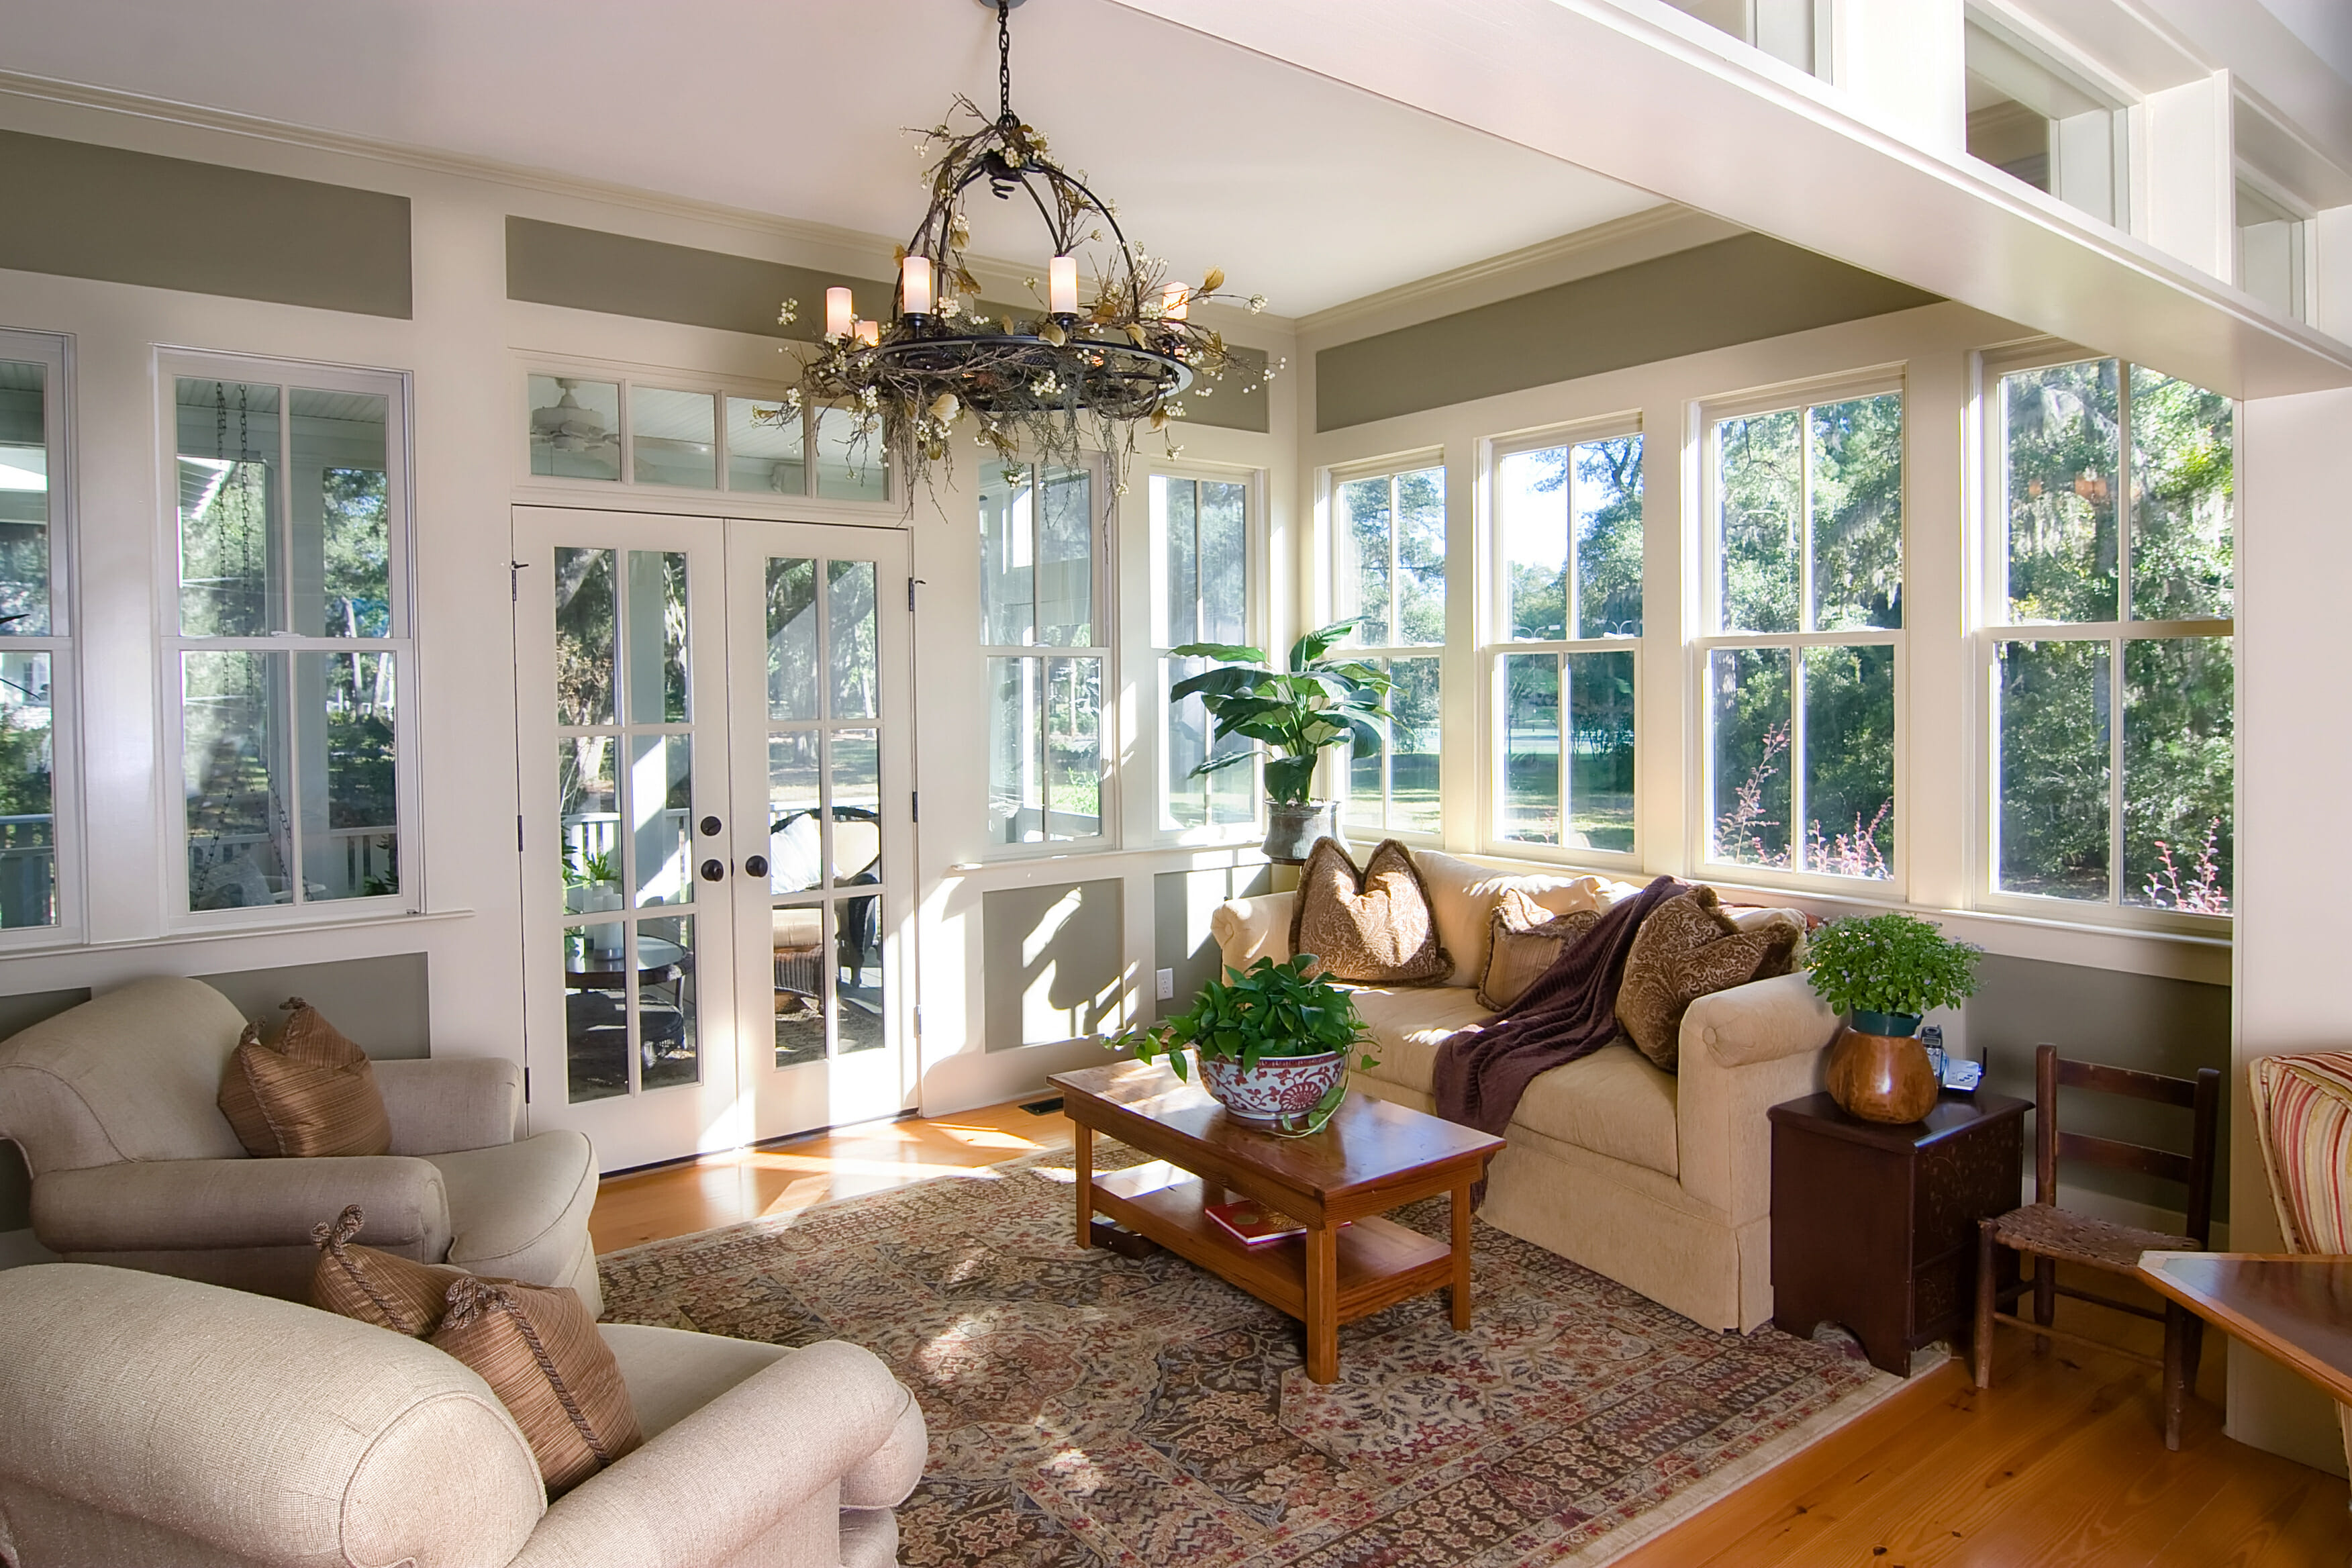 furnished sun room - Sunroom Decor